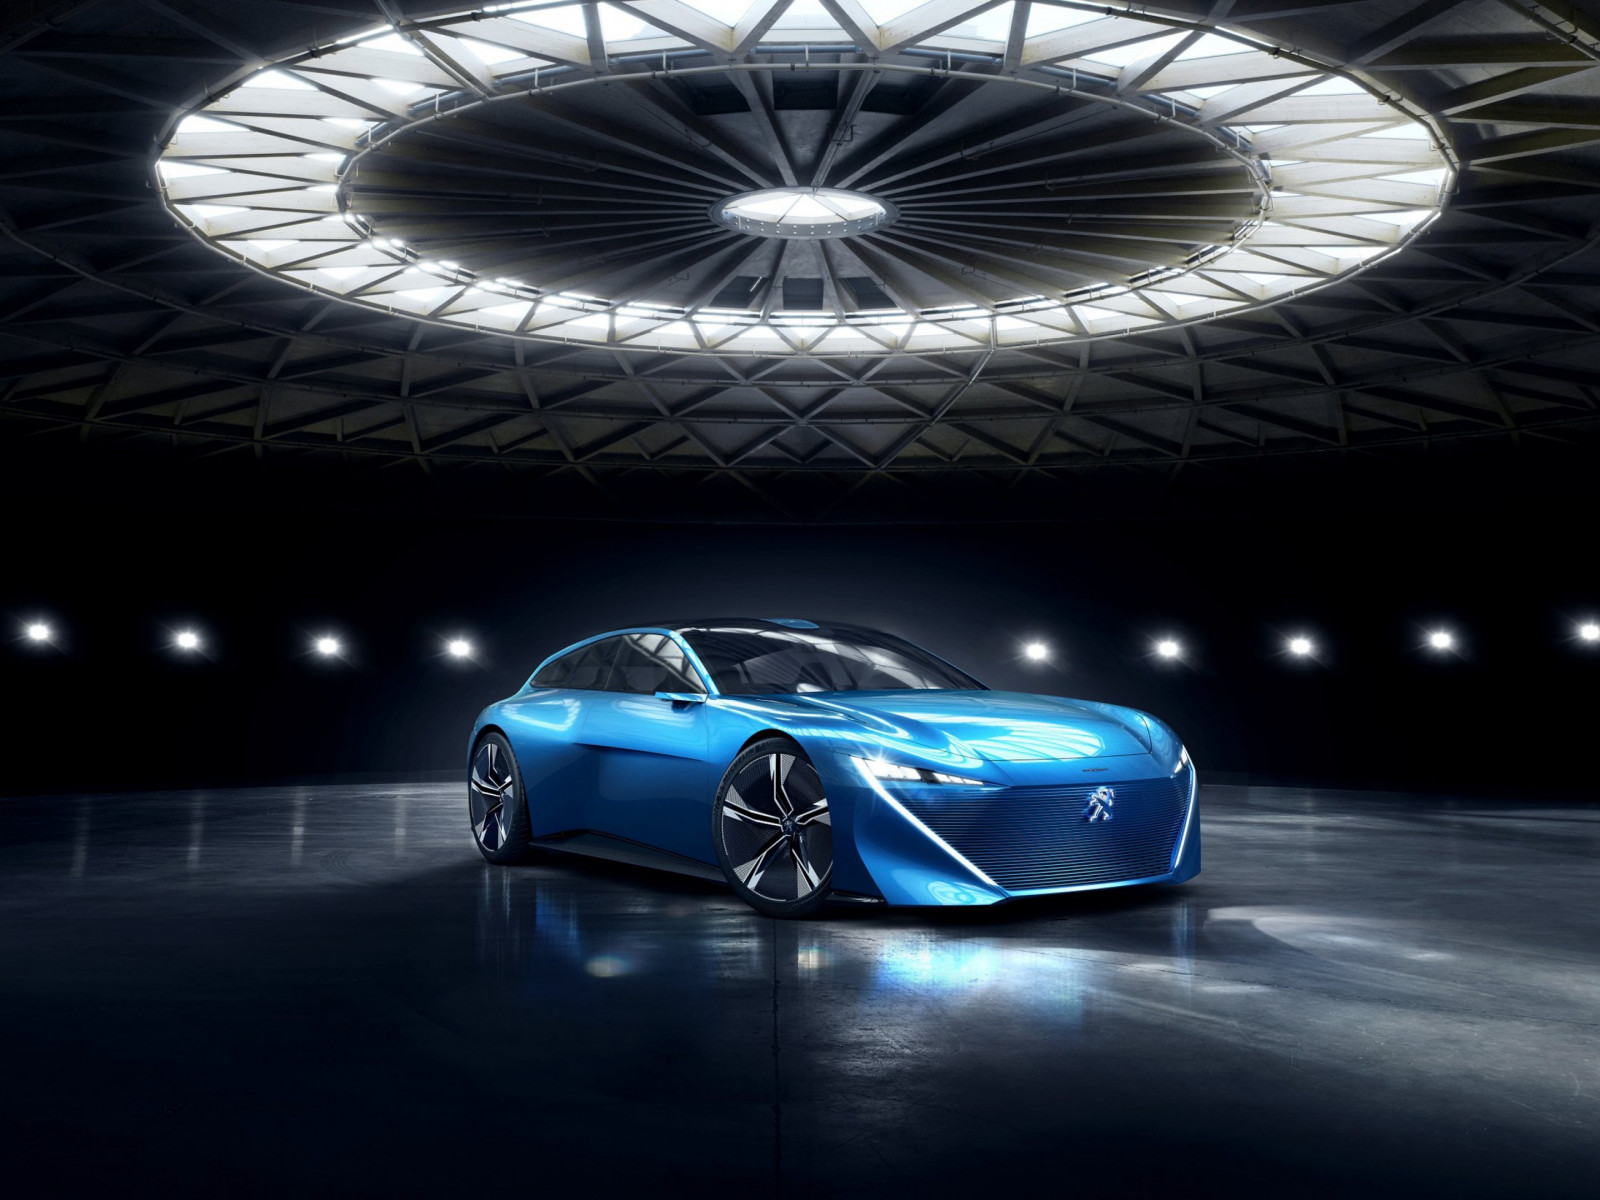 Peugeot Instinct | 1600x1200 wallpaper